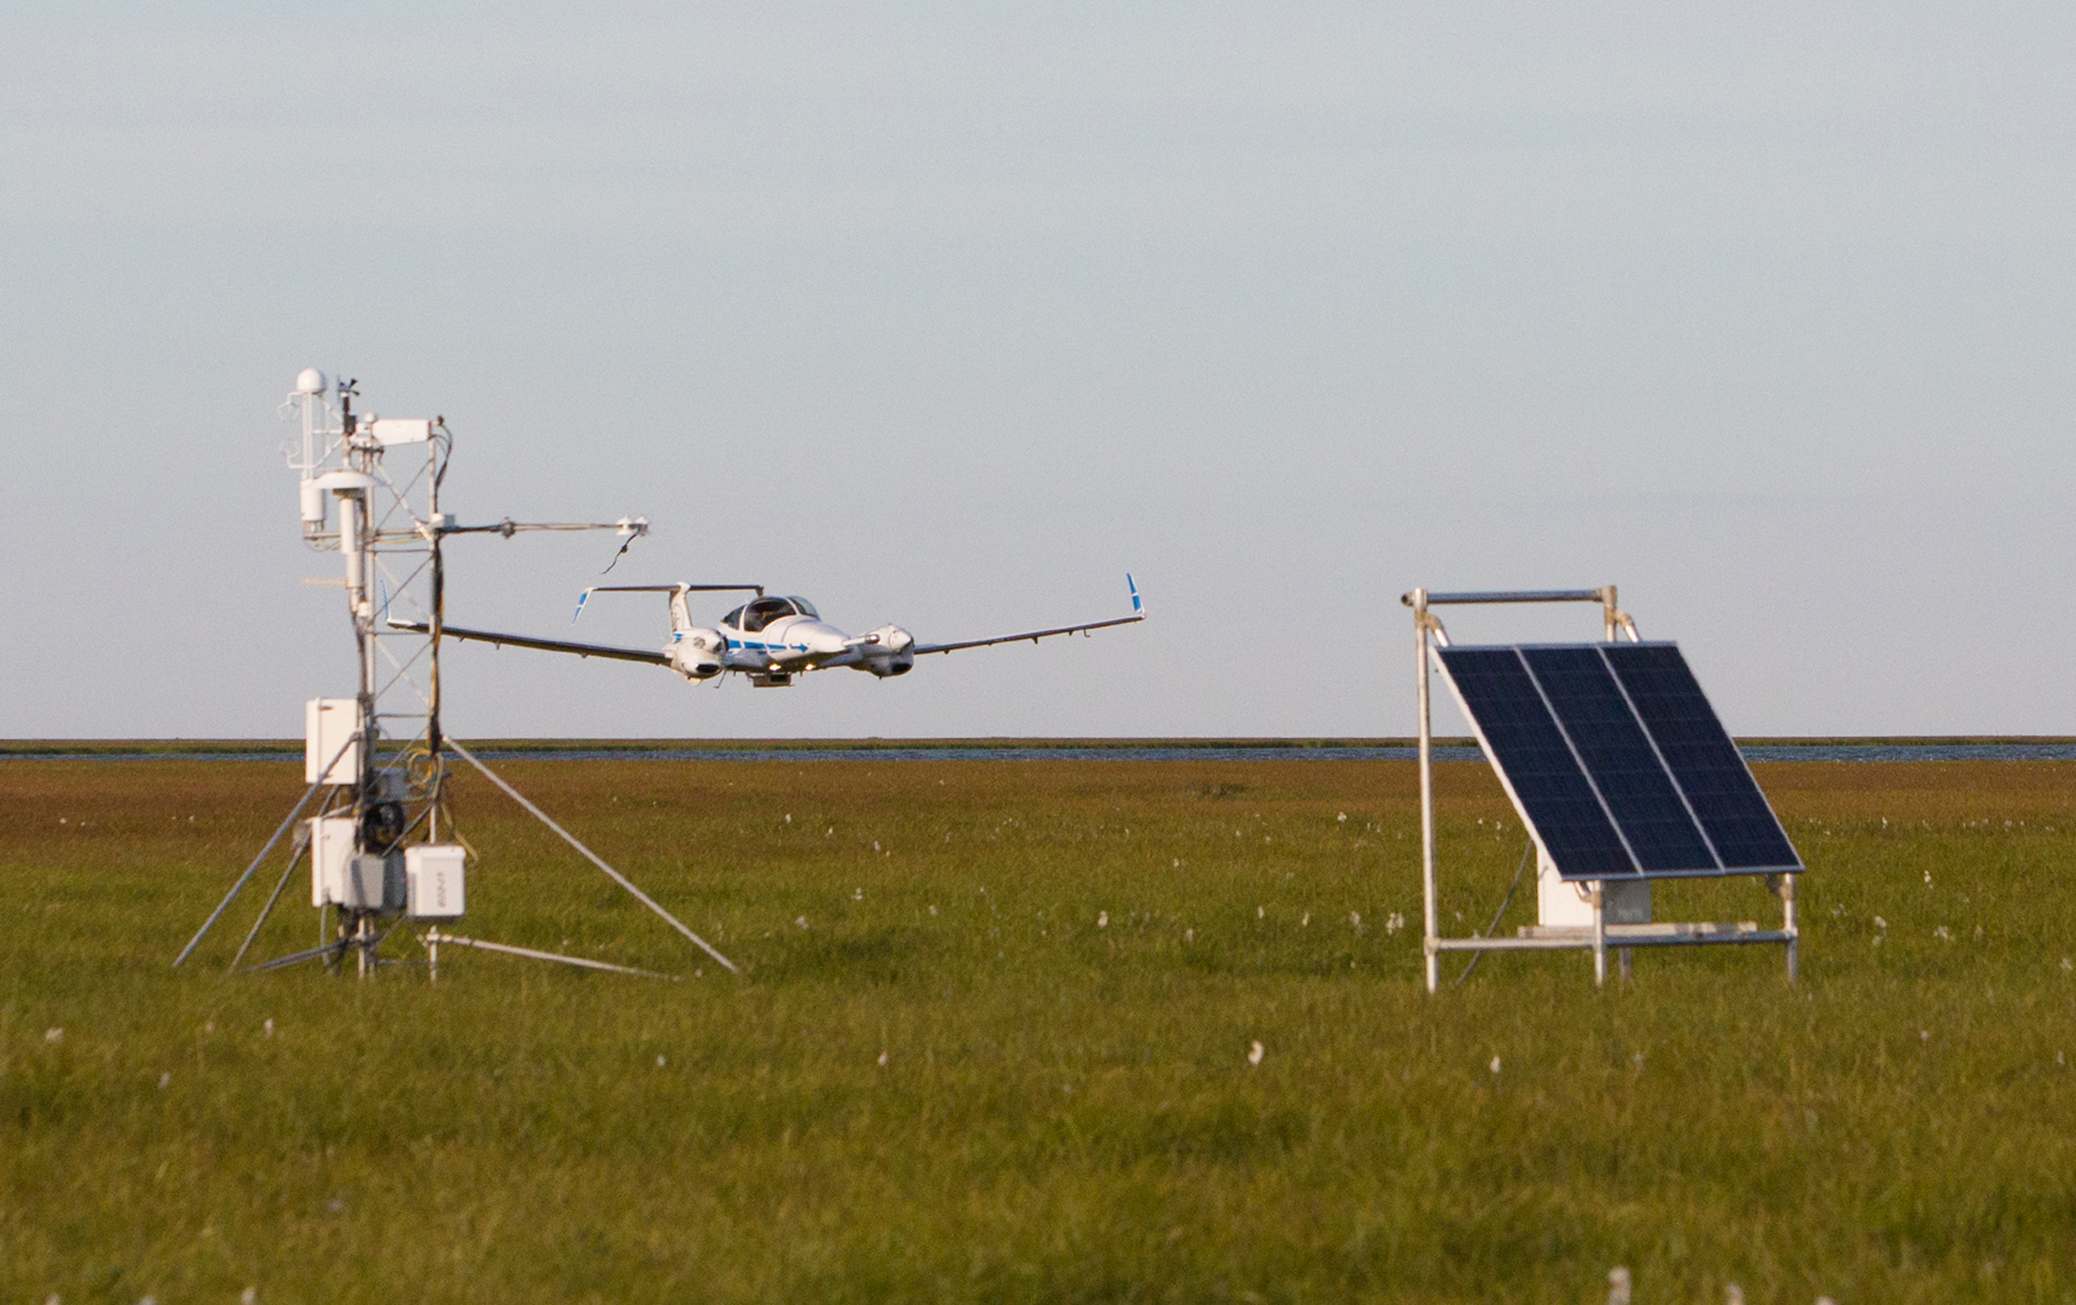 DA-42 performing low-level measurements near the ground-based flux tower